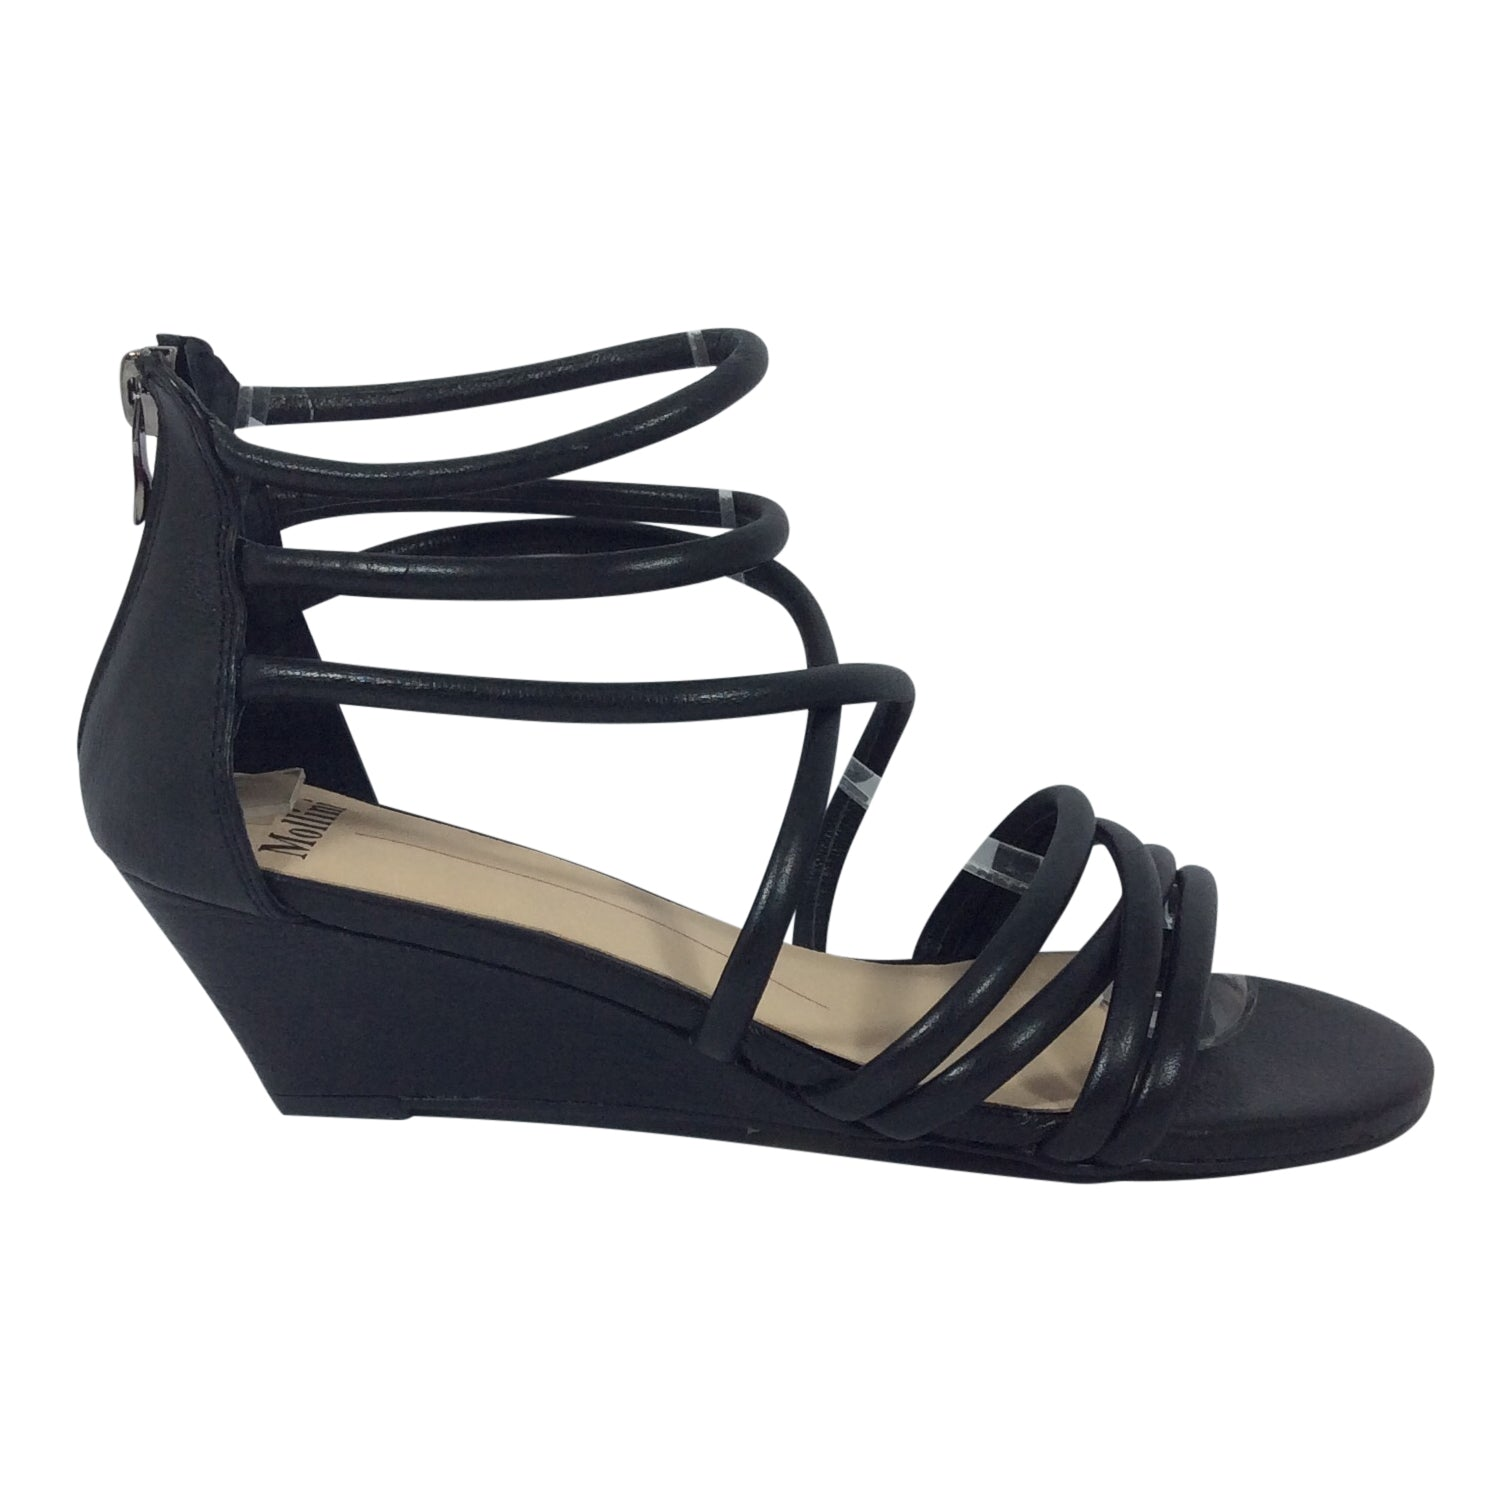 Mollini Shoes - Maeja - Black - Sole Sister Shoes